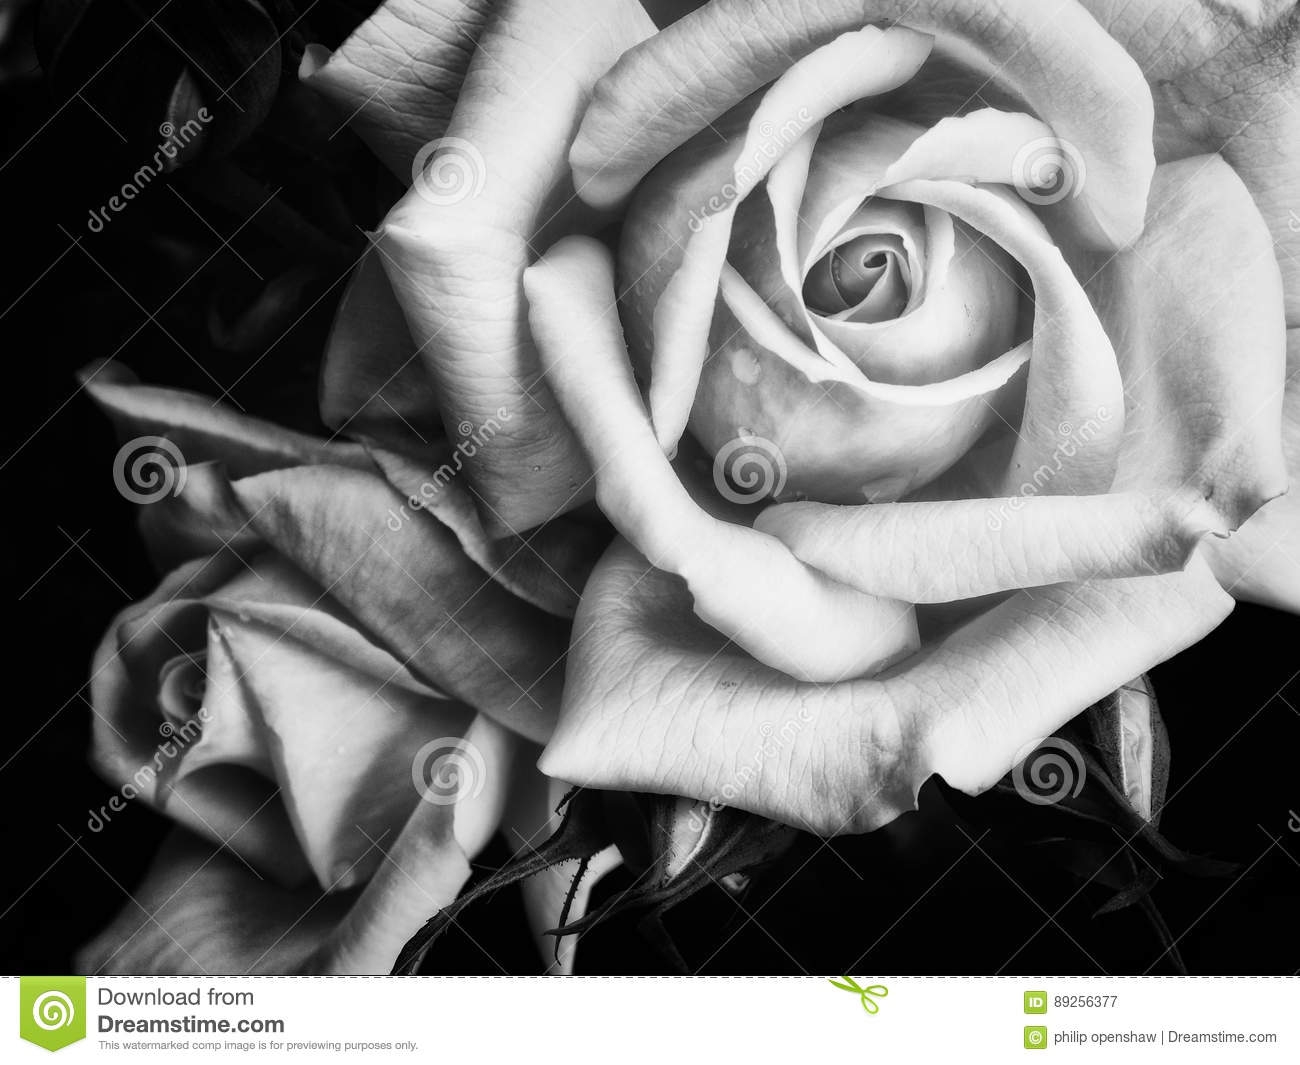 ea755c037 Two Dark Roses On A Black Background Stock Image - Image of design ...